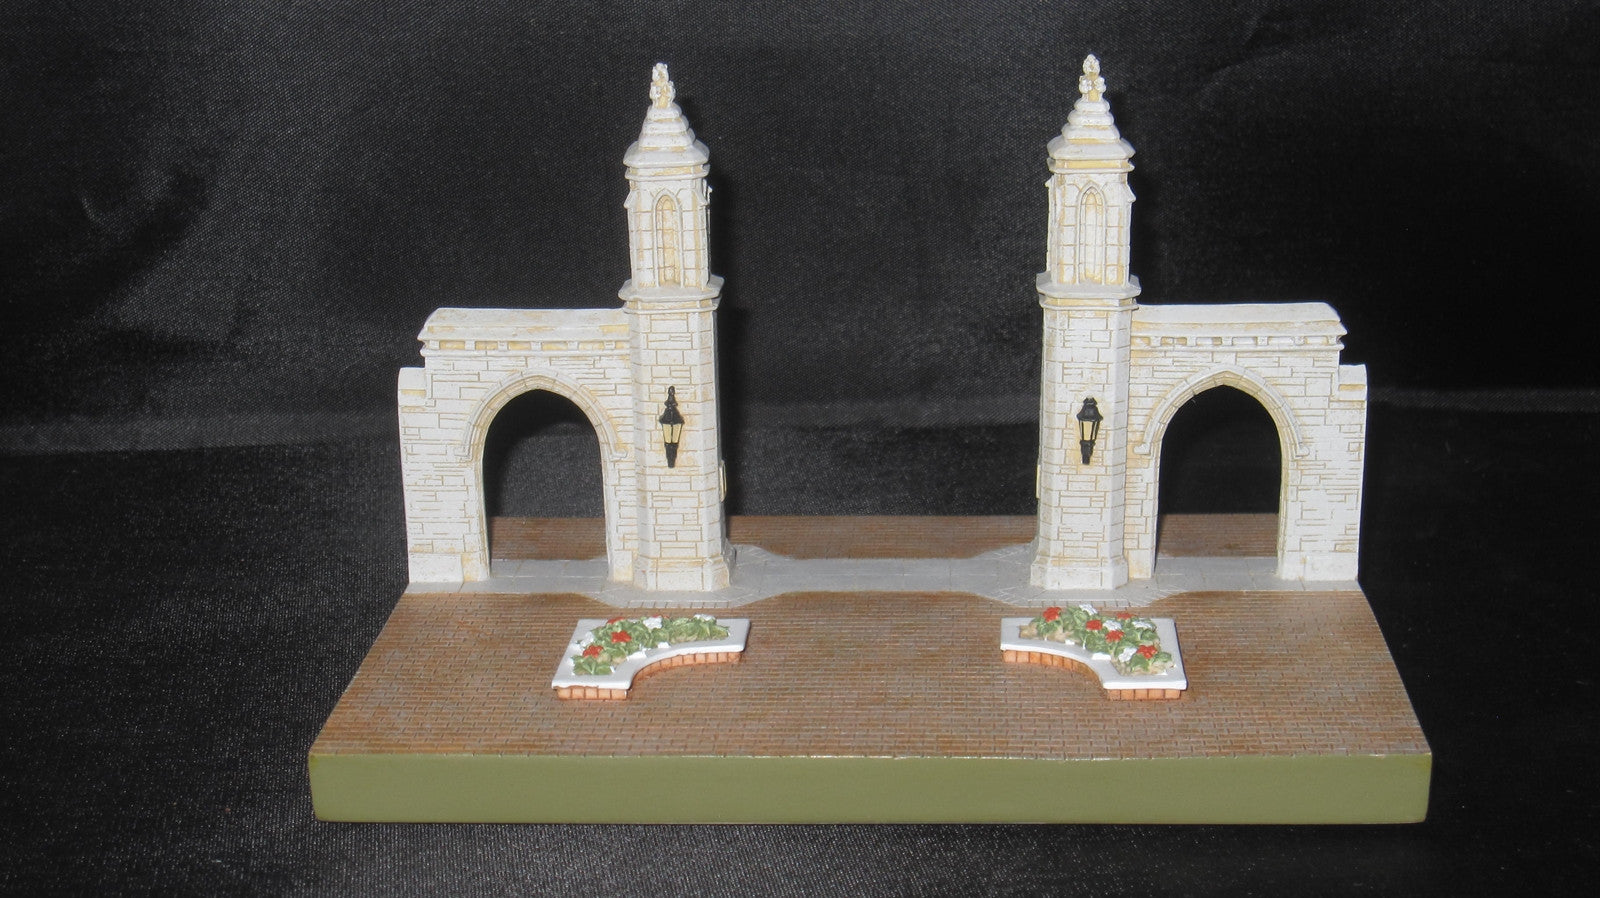 Indiana University Sample Gates Replica 498/10,000 - Vintage Indy Sports